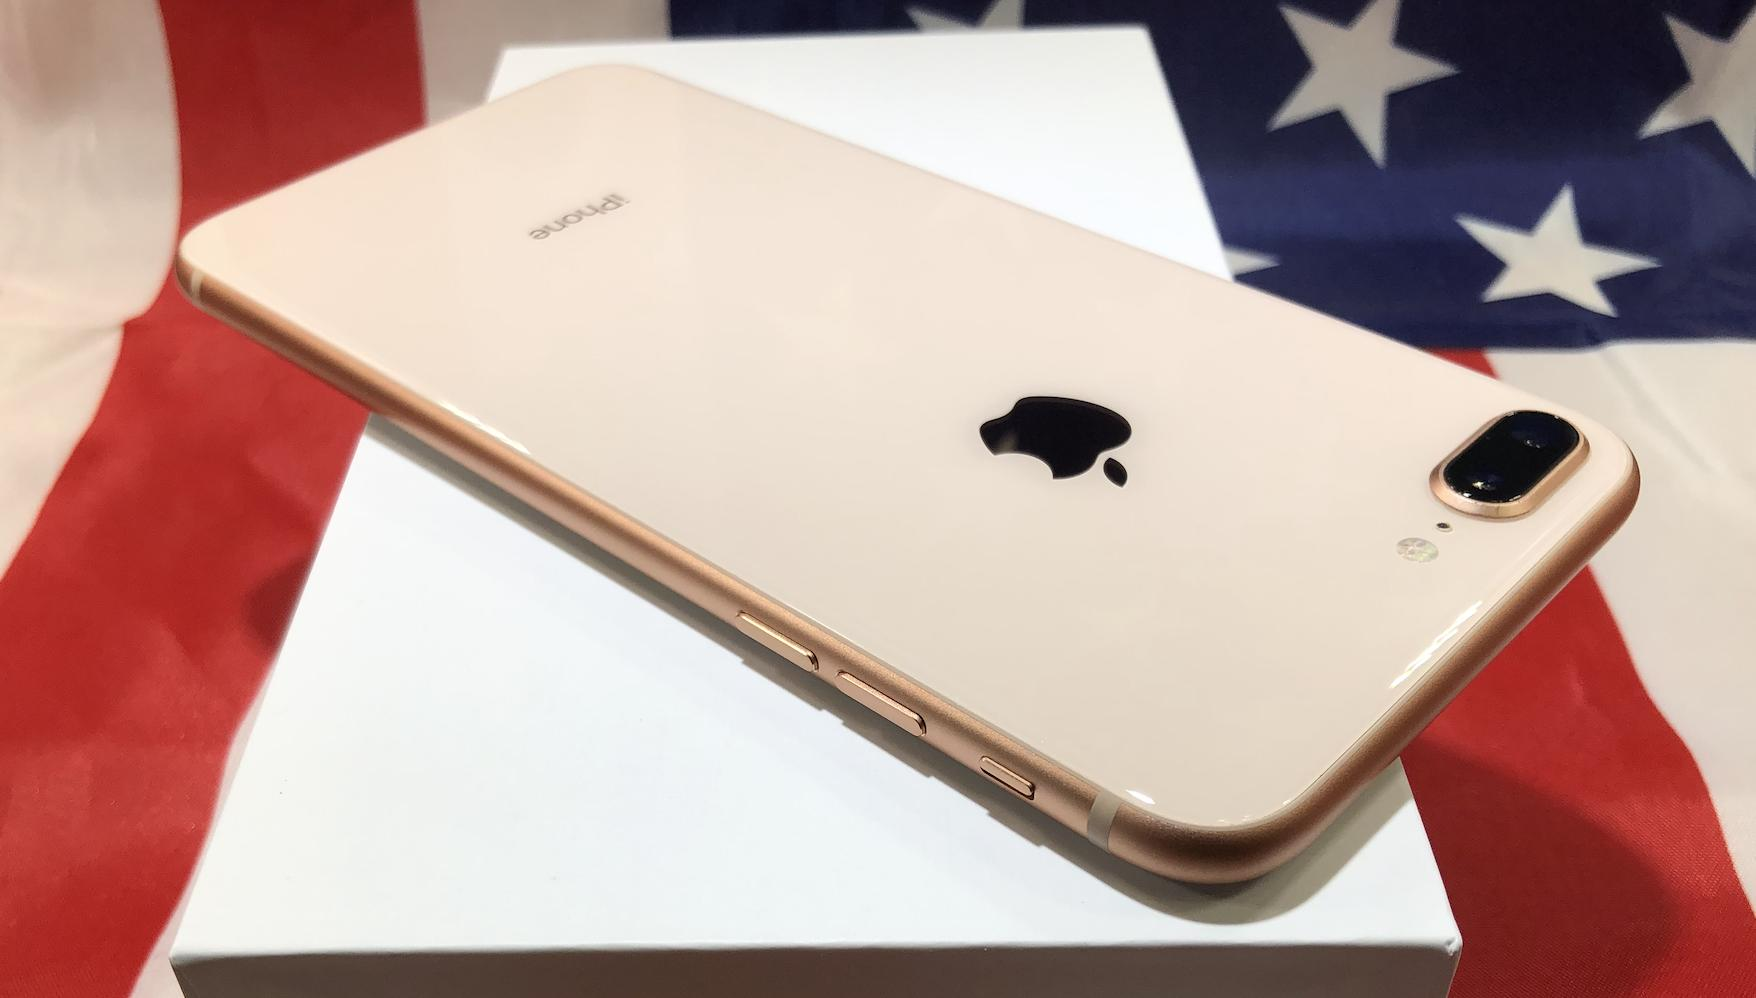 Apple iPhone 8 Plus (T-Mobile) [A1897] - Gold, 64 GB